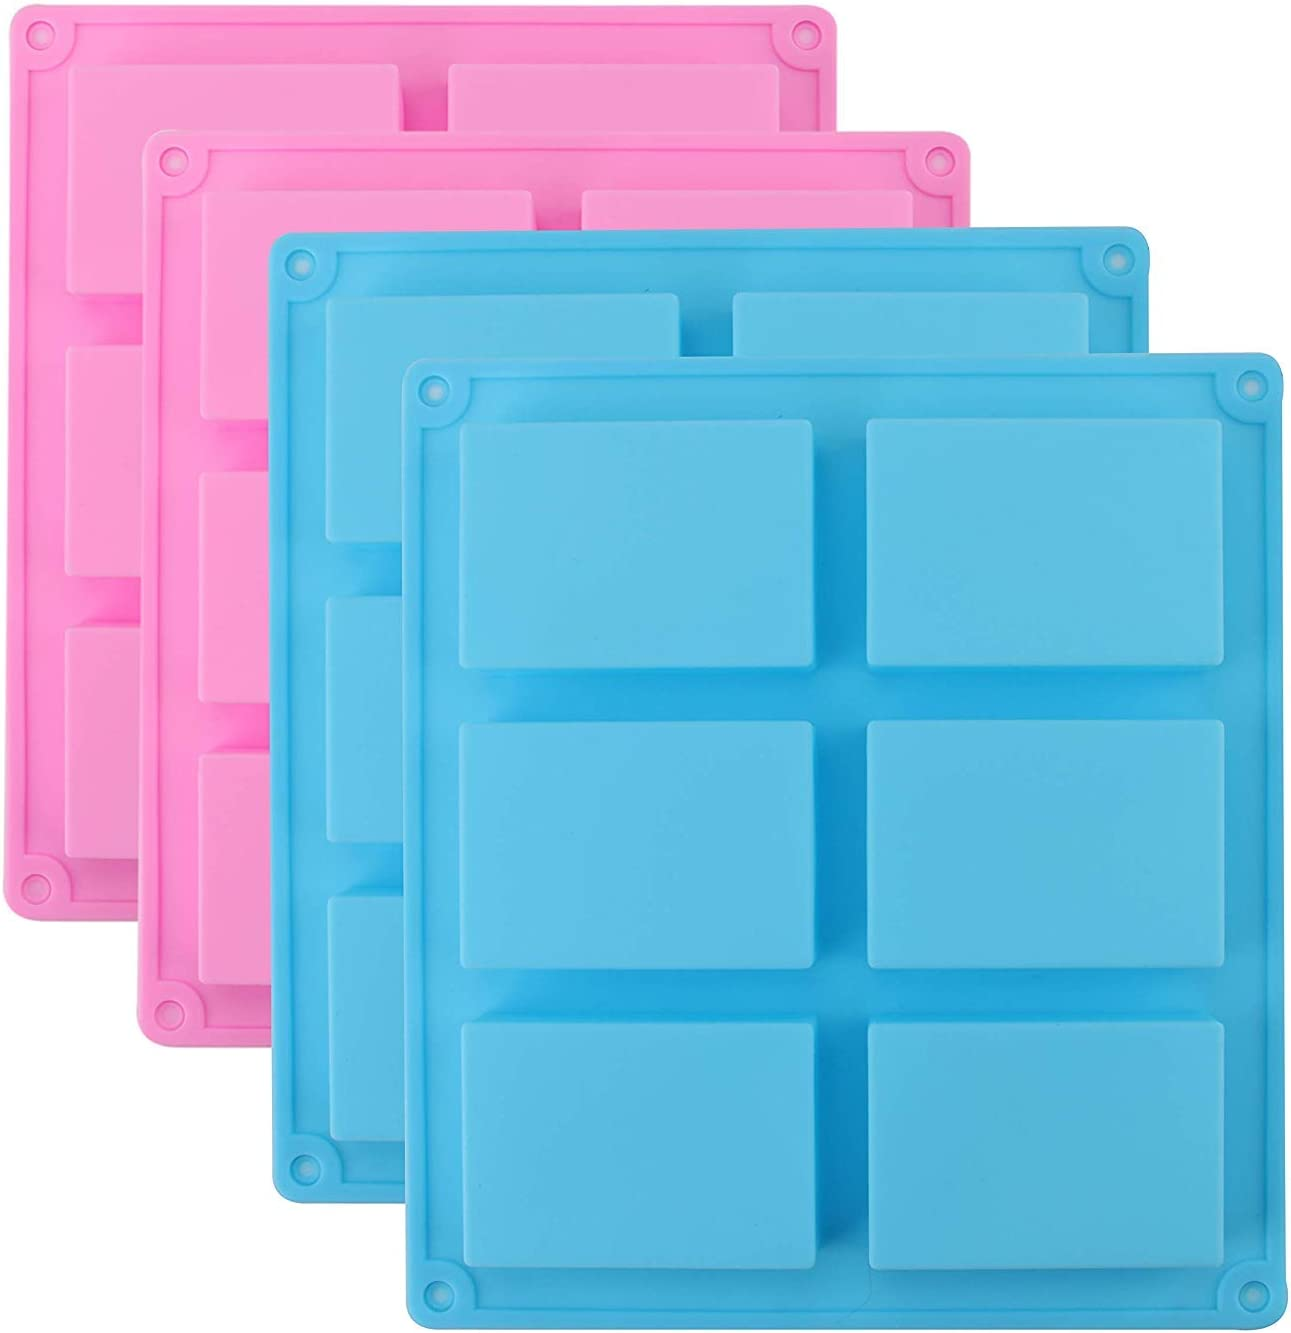 Fasmov Pack of 4 Rectangle Silicone Molds, 6-Cavity Cake Baking Pans, Homemade Craft Soap Mold, Cake Mold, Biscuit Chocolate Mold, Ice Cube Tray- Pink, Blue